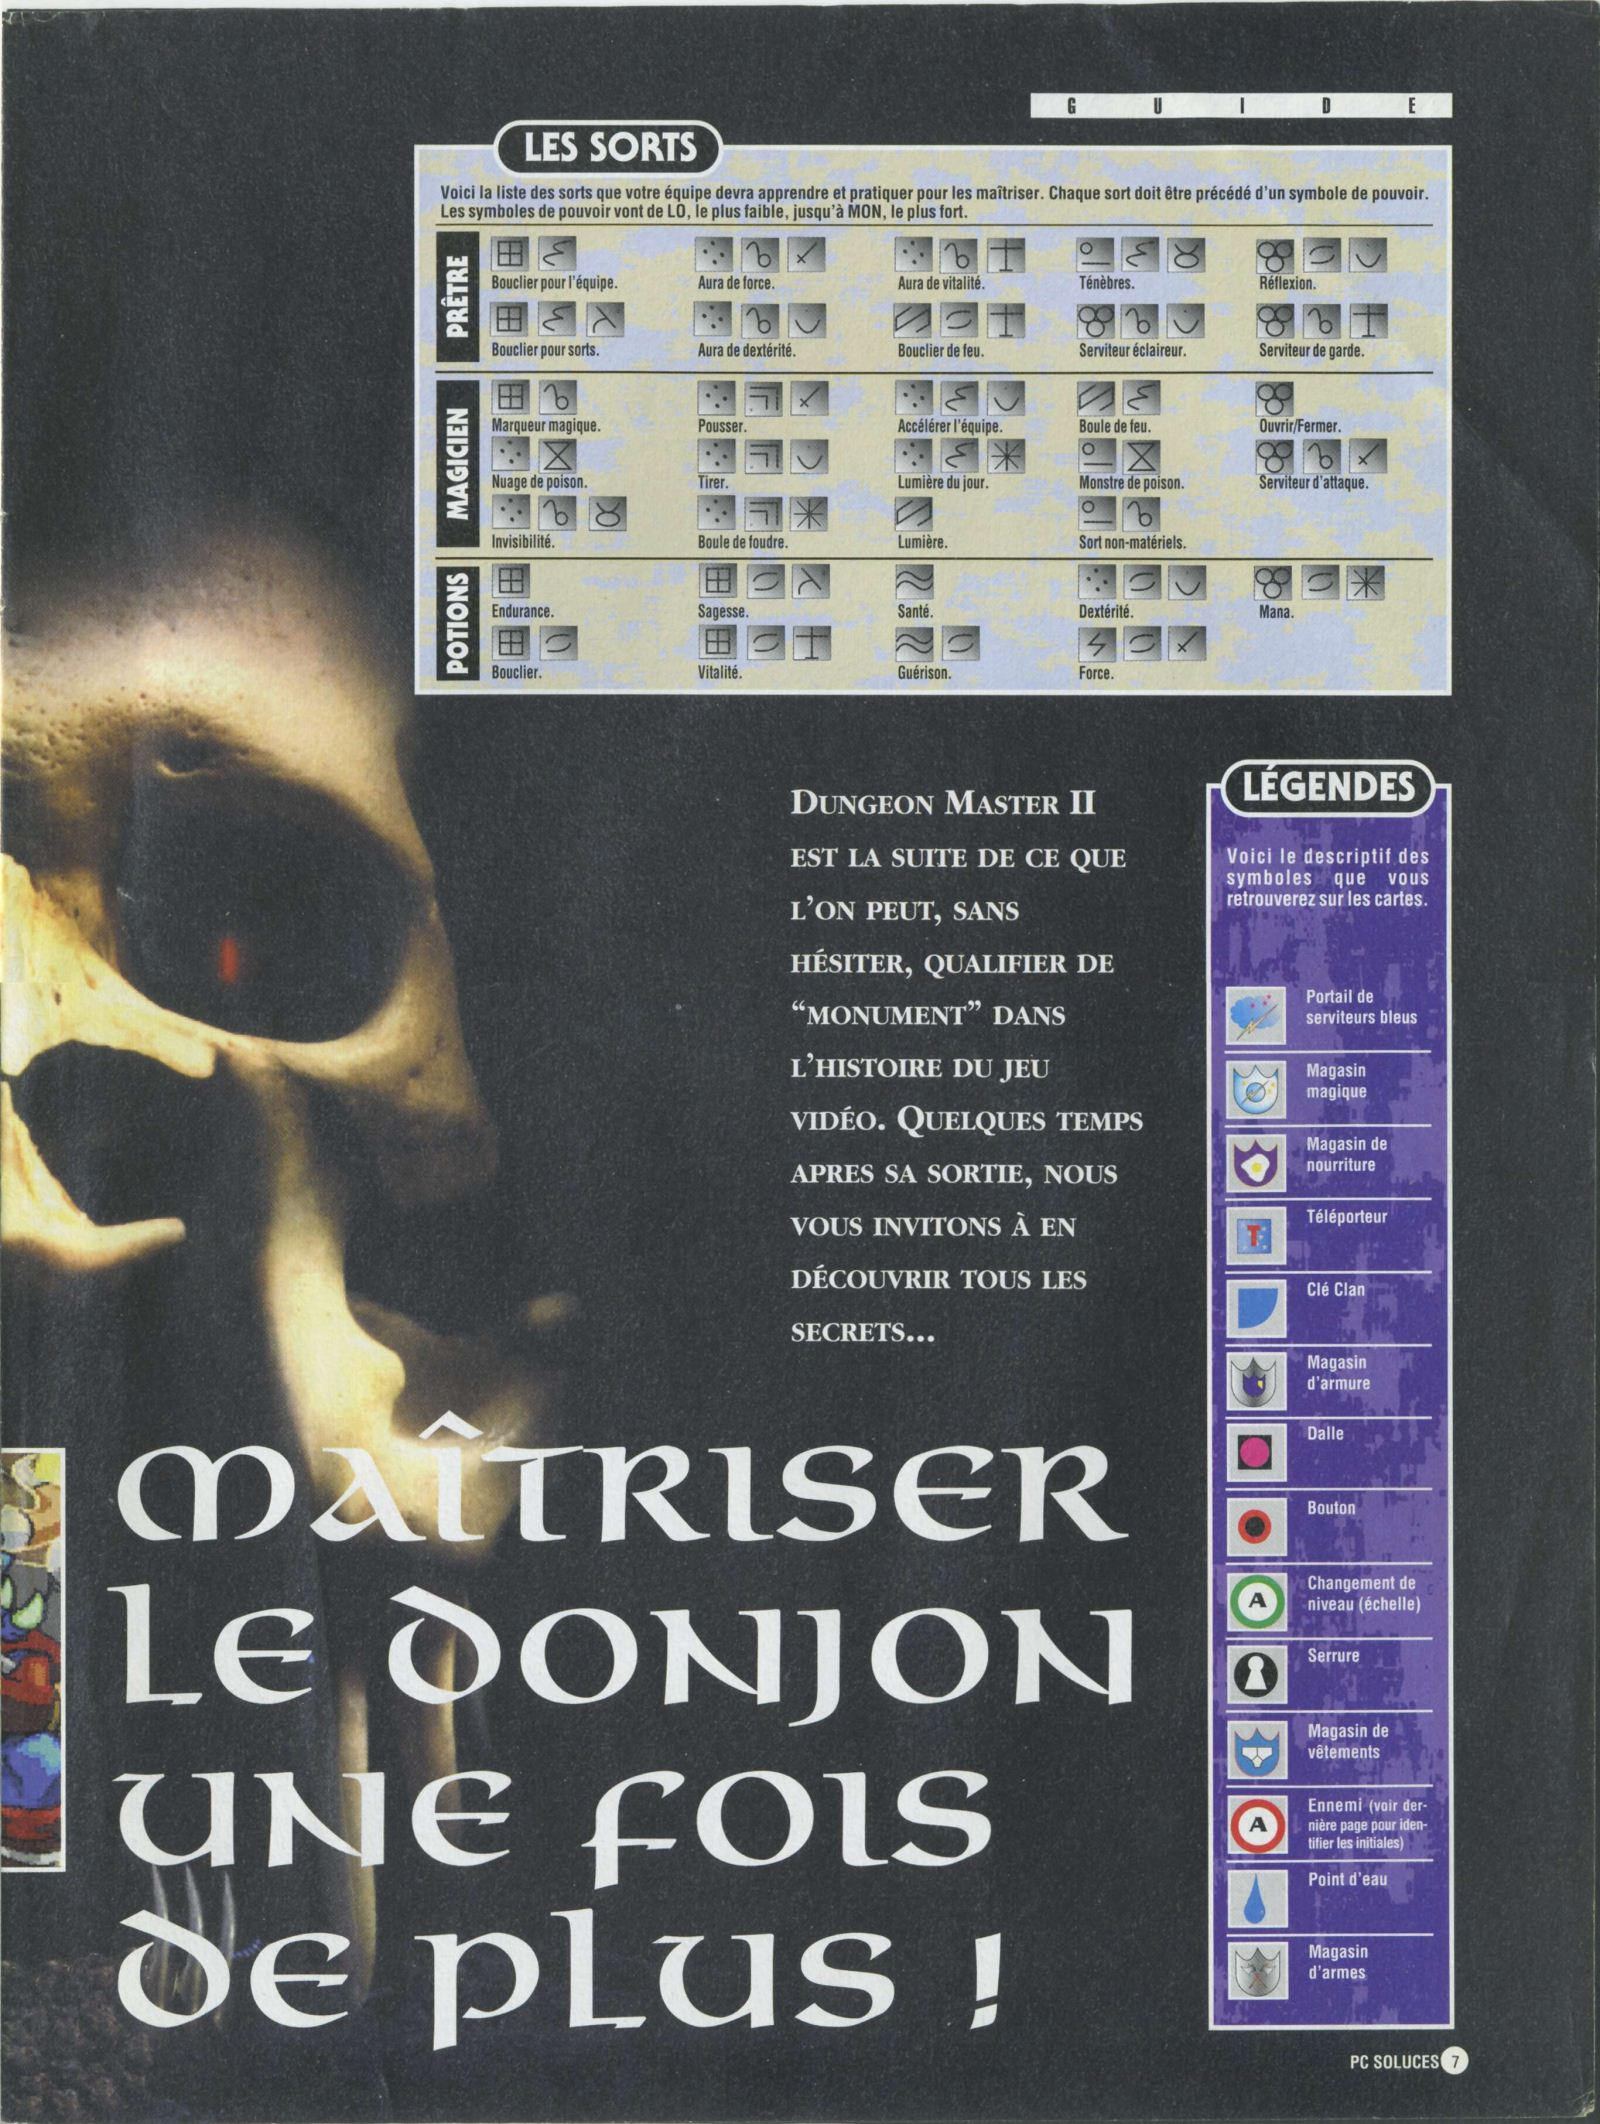 Dungeon Master II solution published in French magazine &amp;#039;PC Soluces&amp;#039;, Issue#1, February-March 1996, Page07